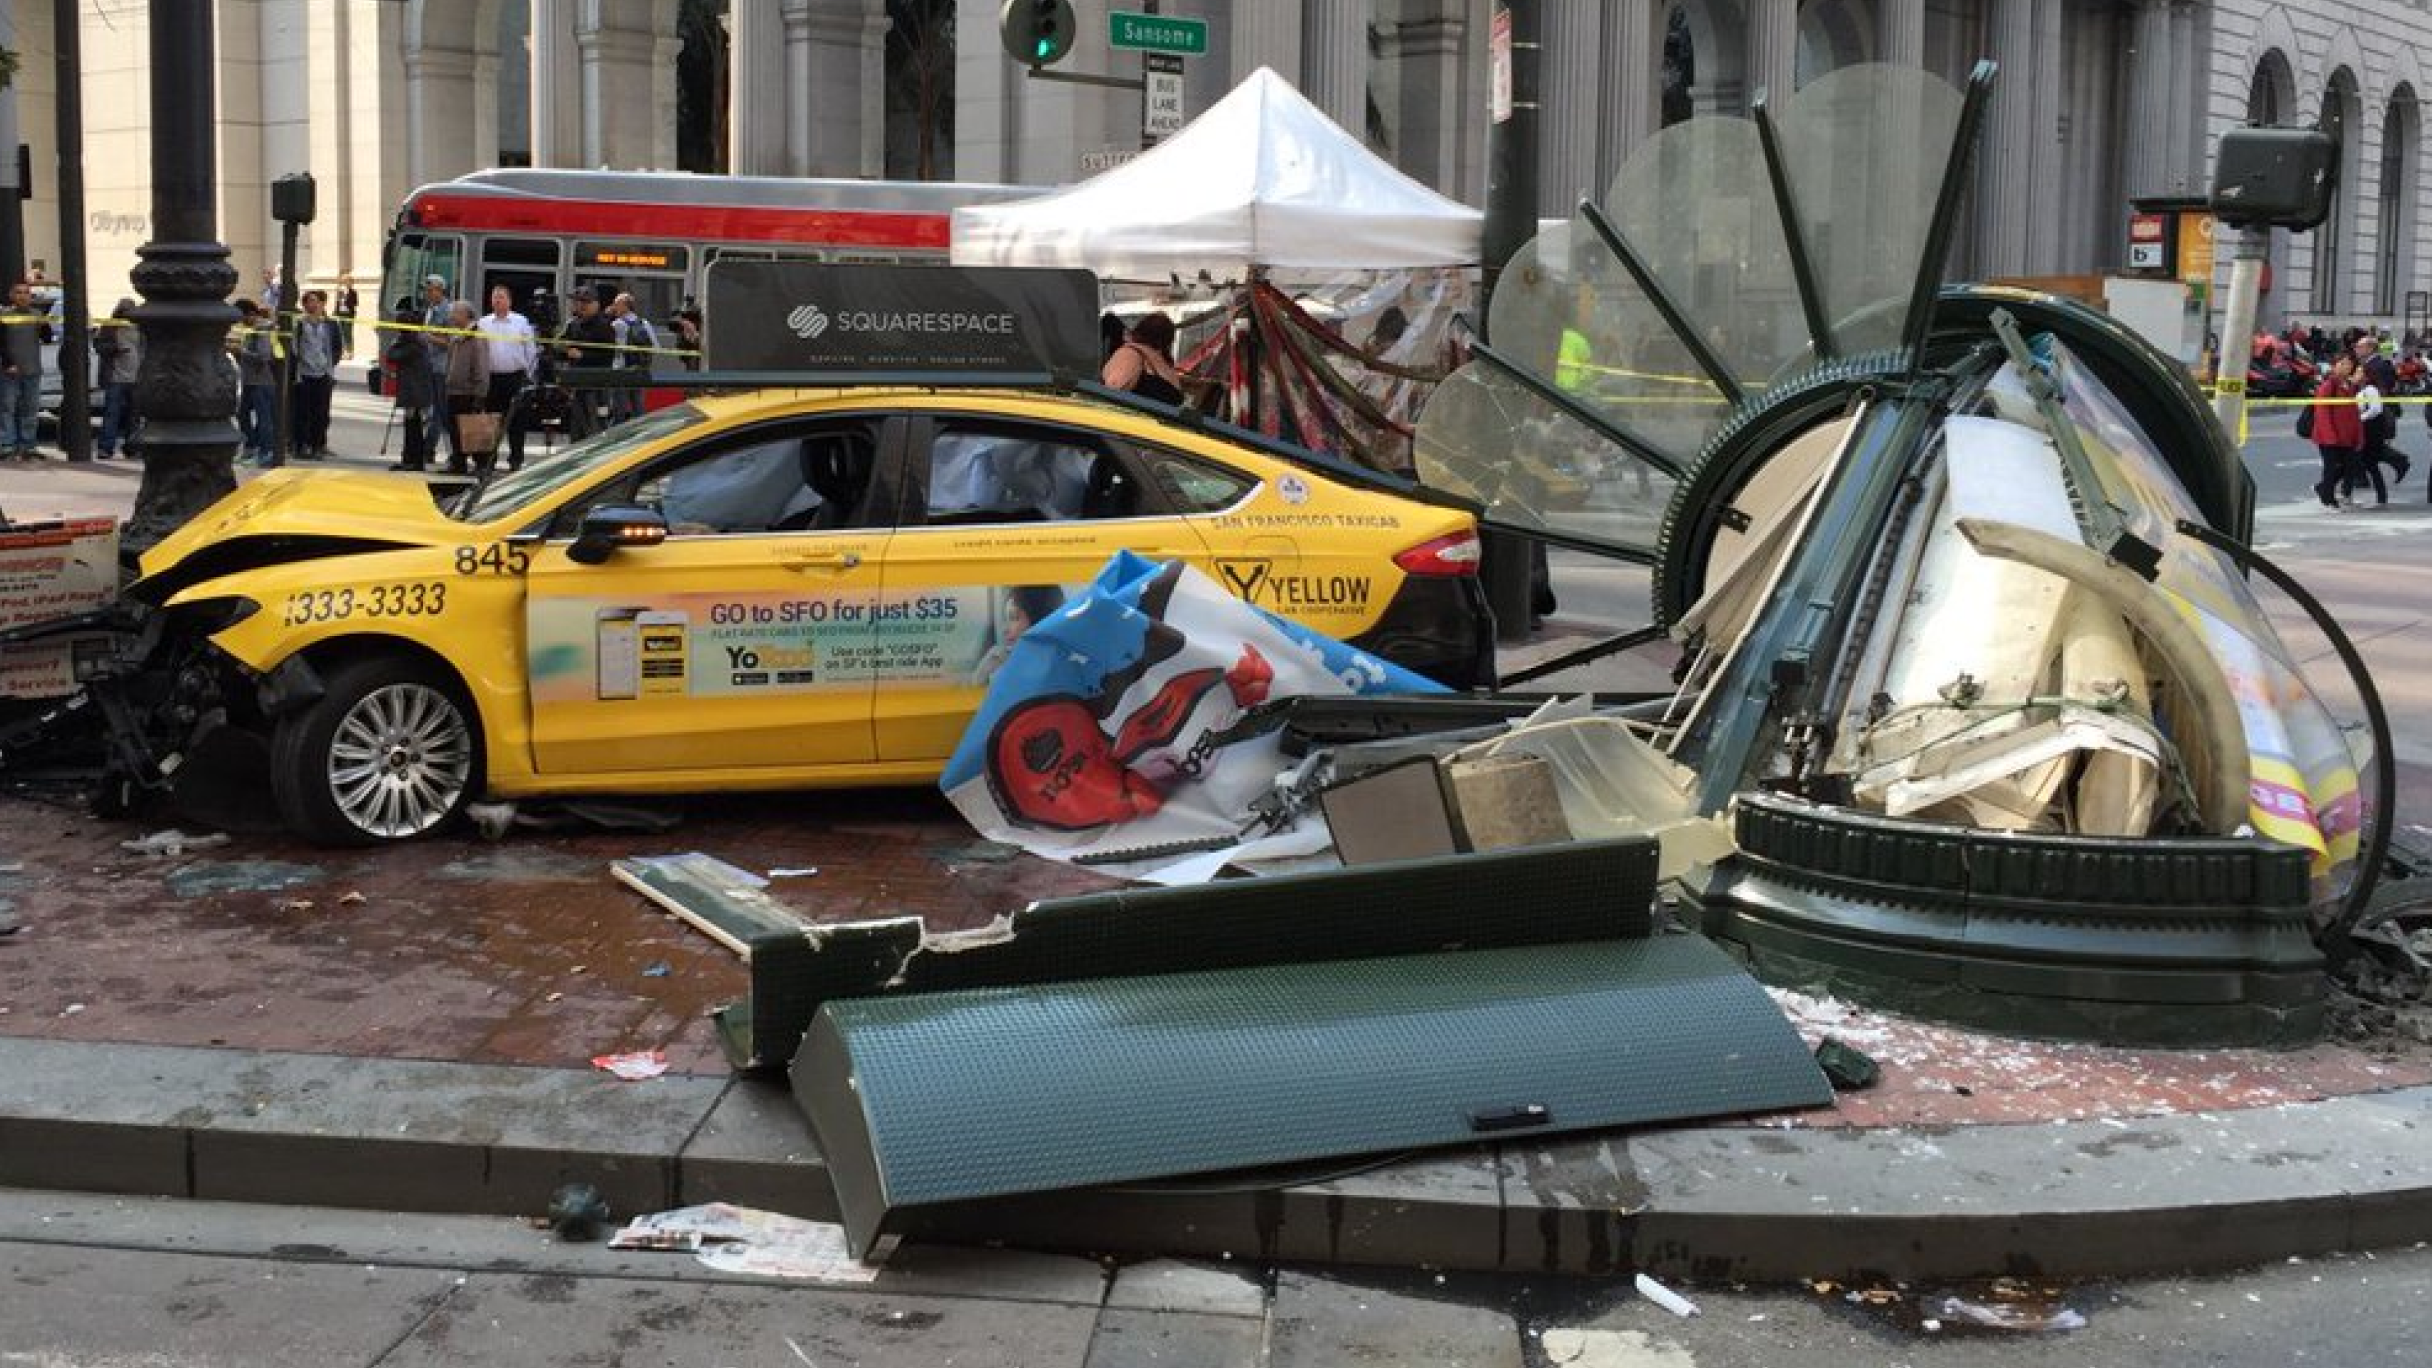 A taxi cab topped with a Squarespace advertisement crashes into a newspaper stand.